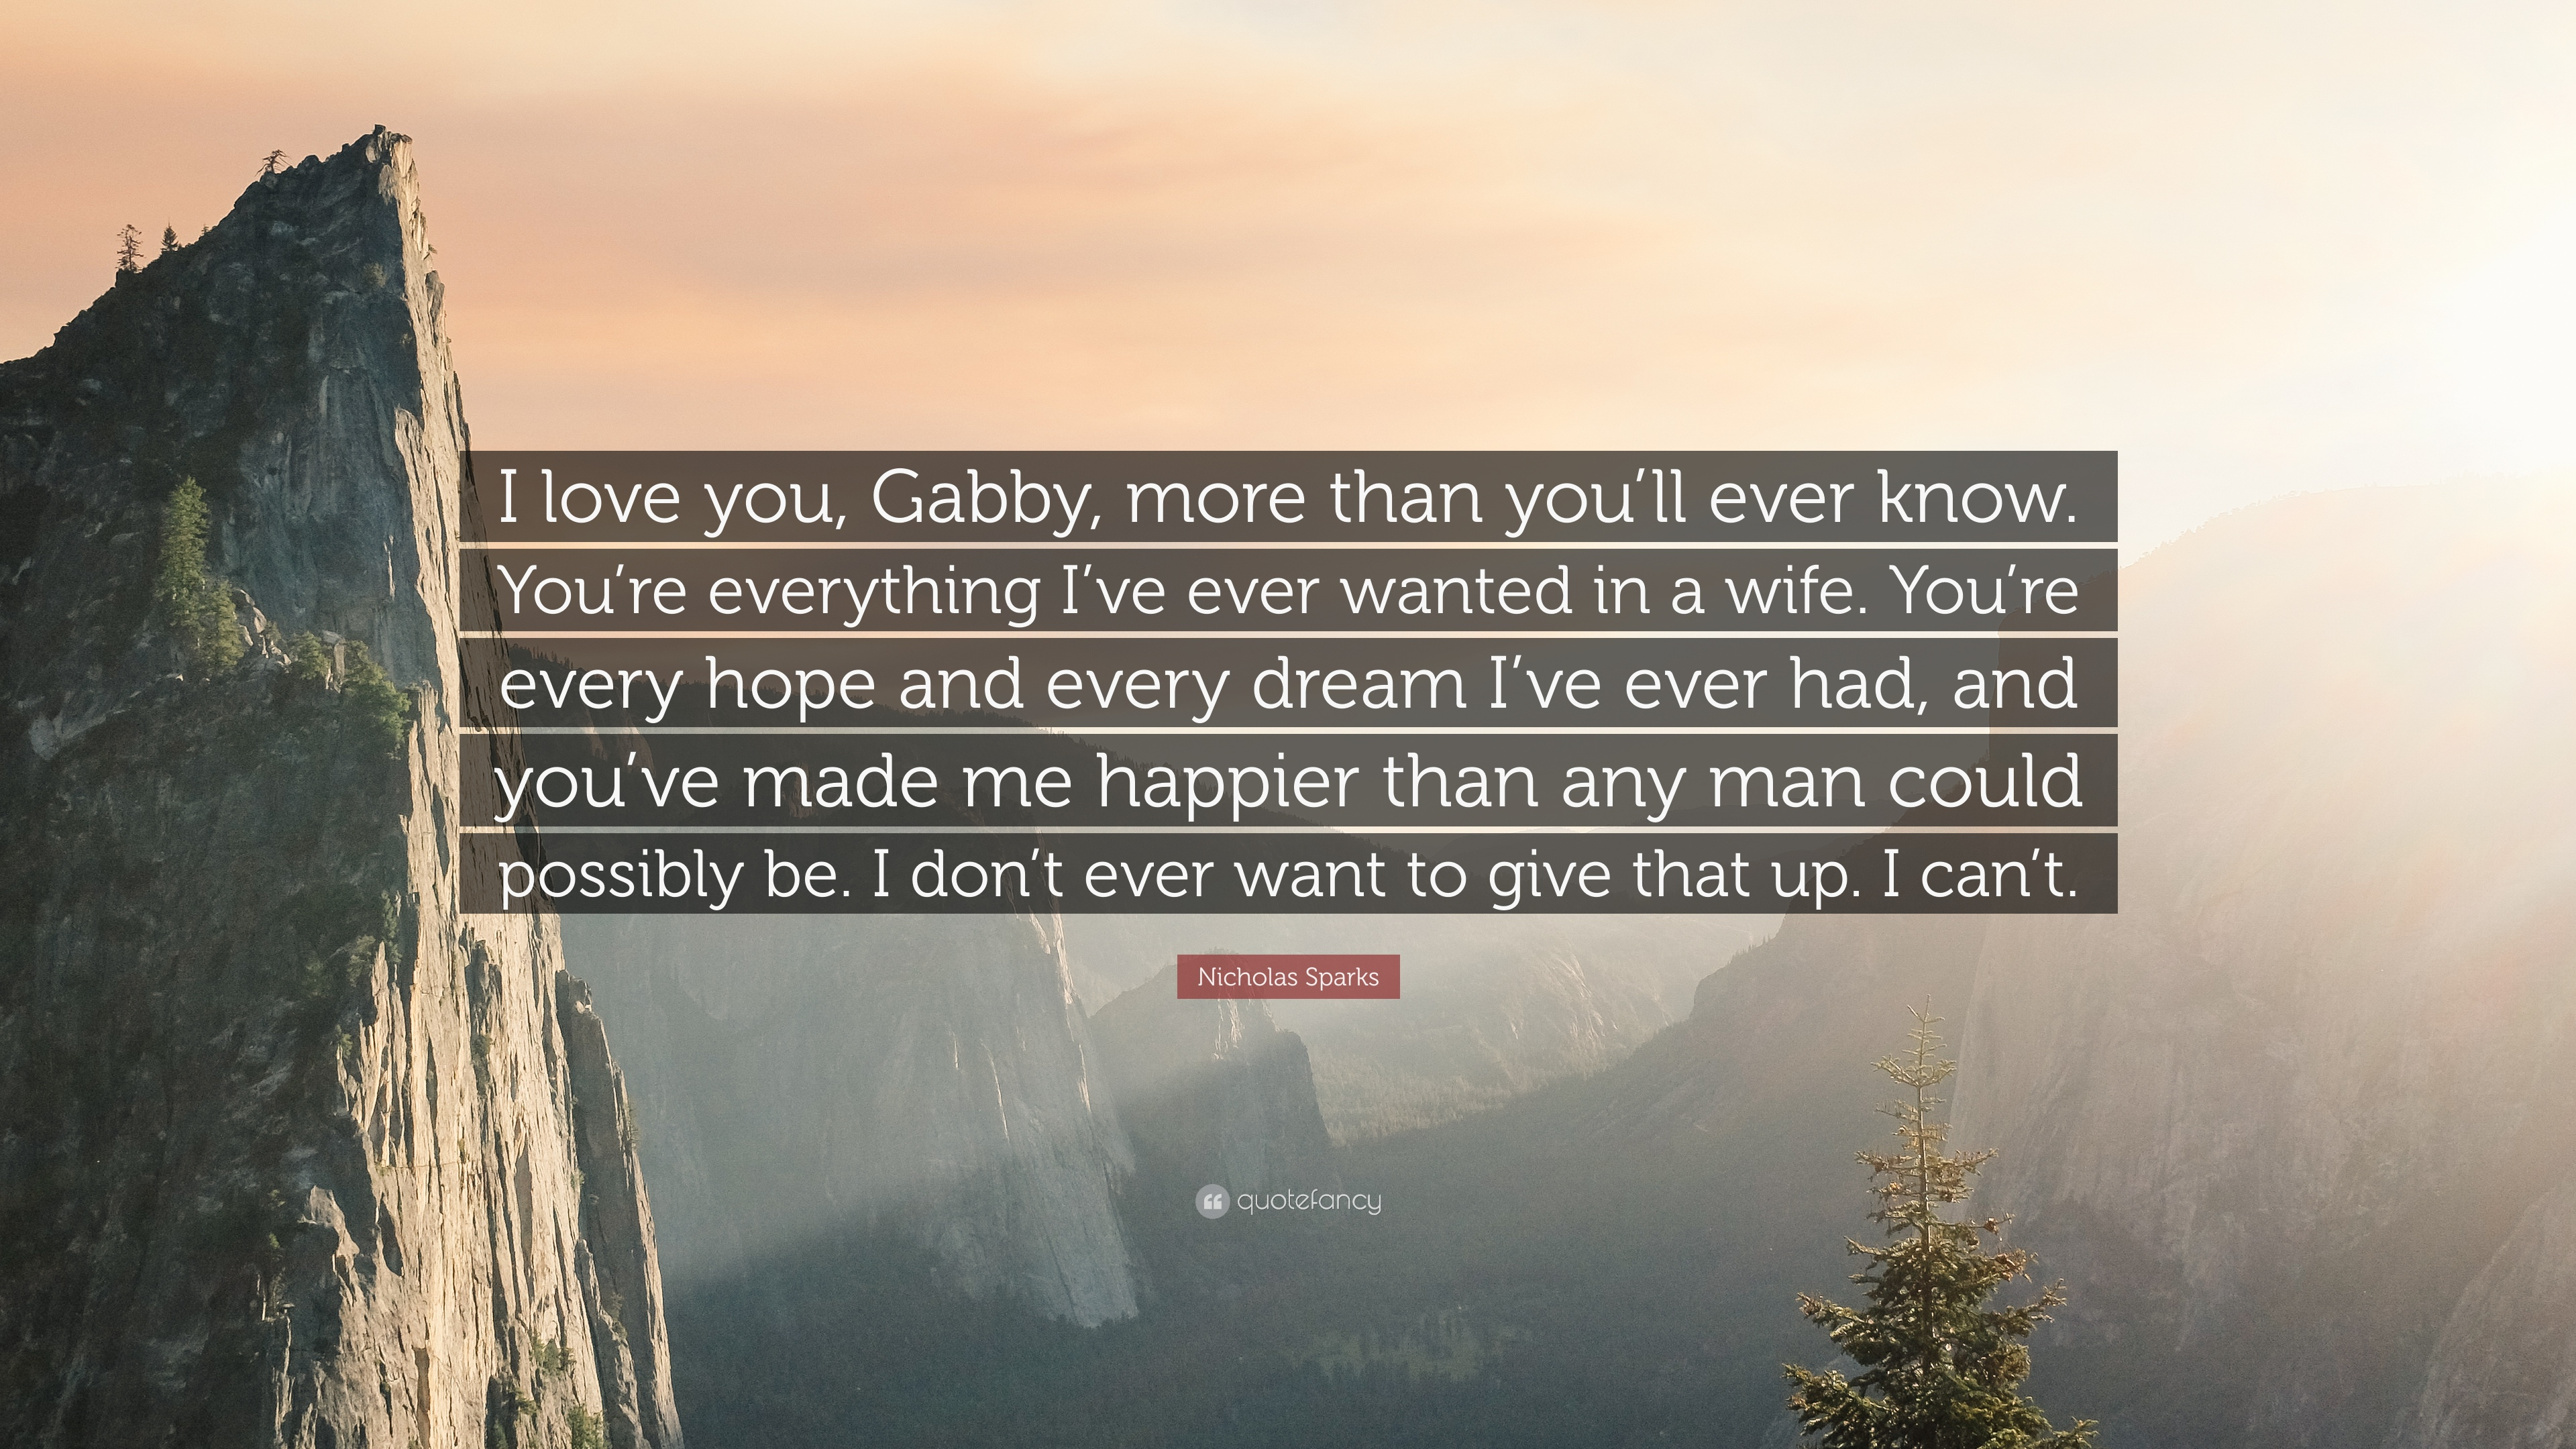 Nicholas Sparks Quote I Love You Gabby More Than Youll Ever